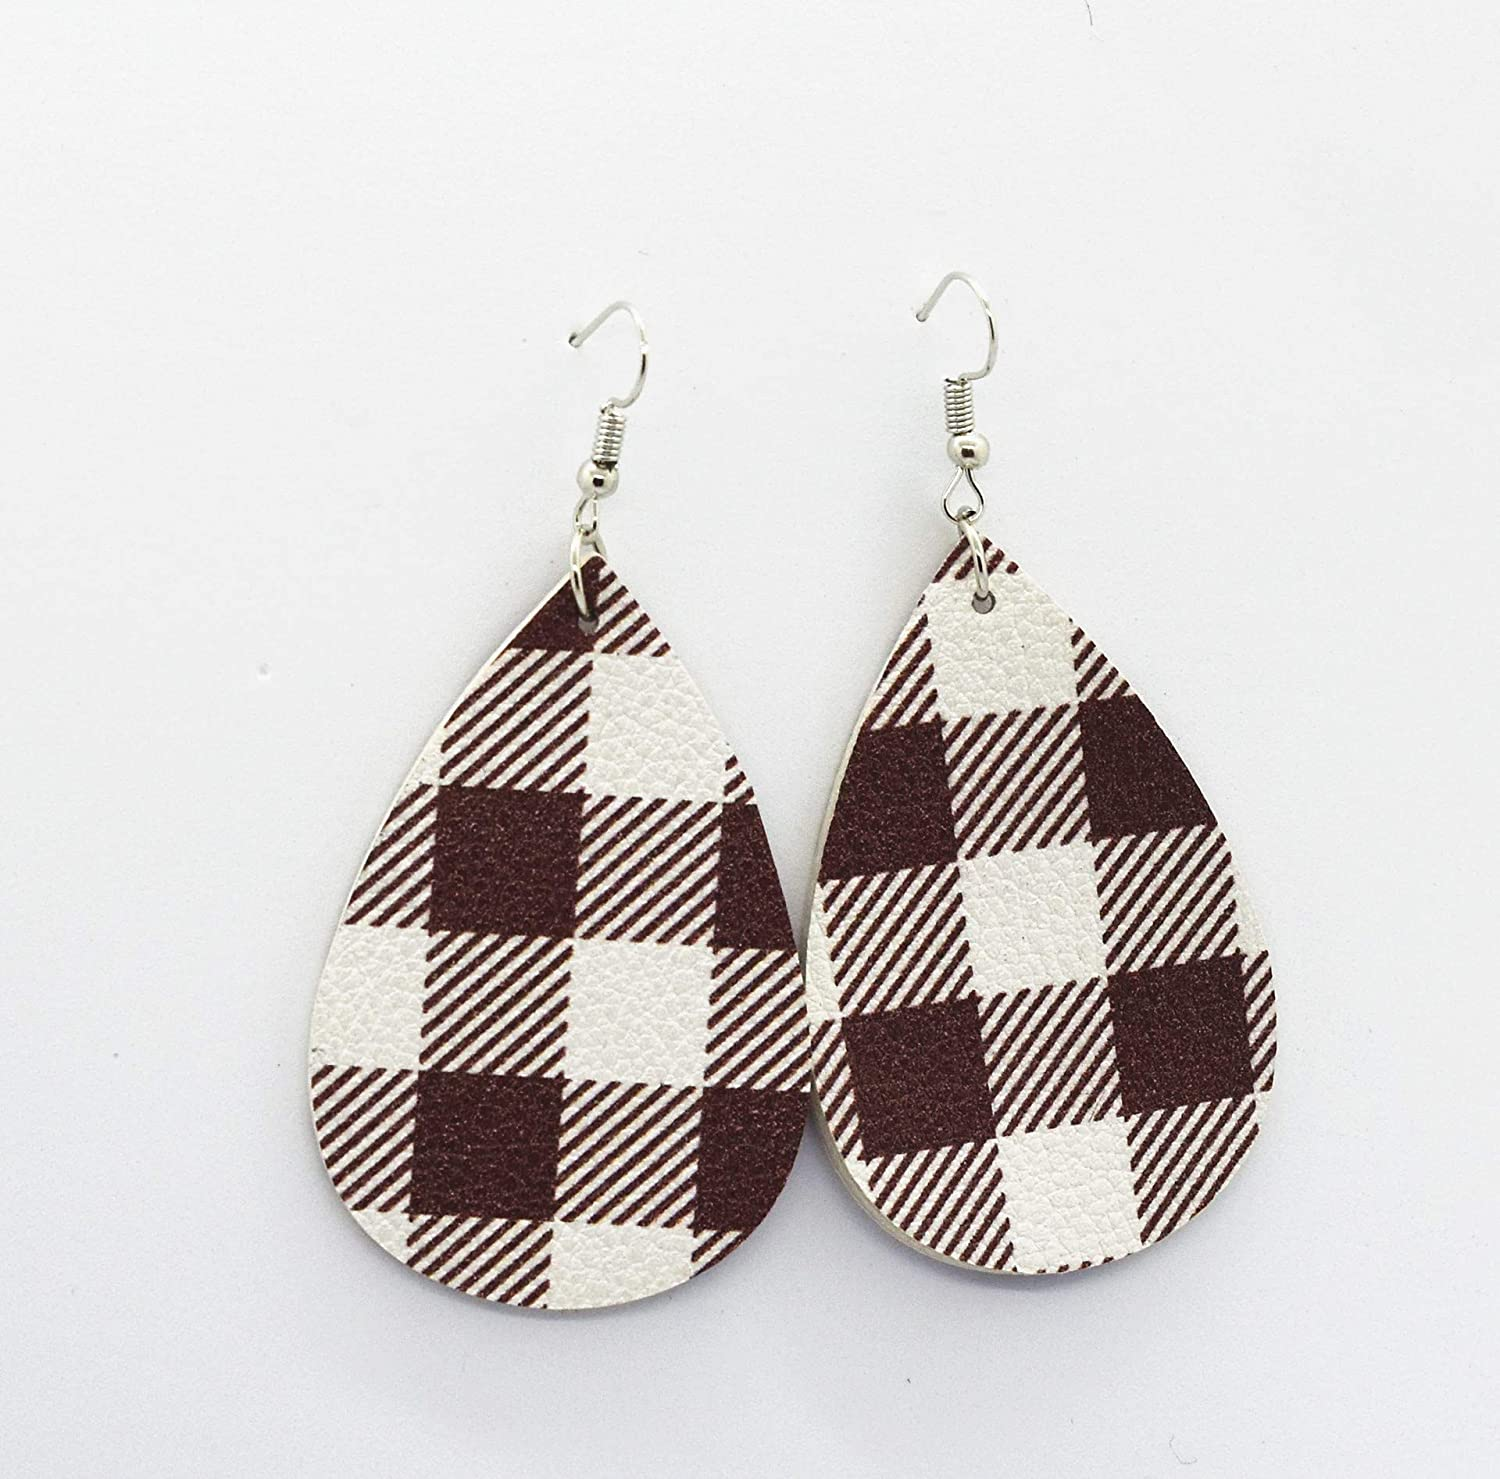 OFGOT7 Plaid Leather Earrings for Women Handmade Lightweight Teardrop Dangle Faux Leather Statement Earrings for Girls